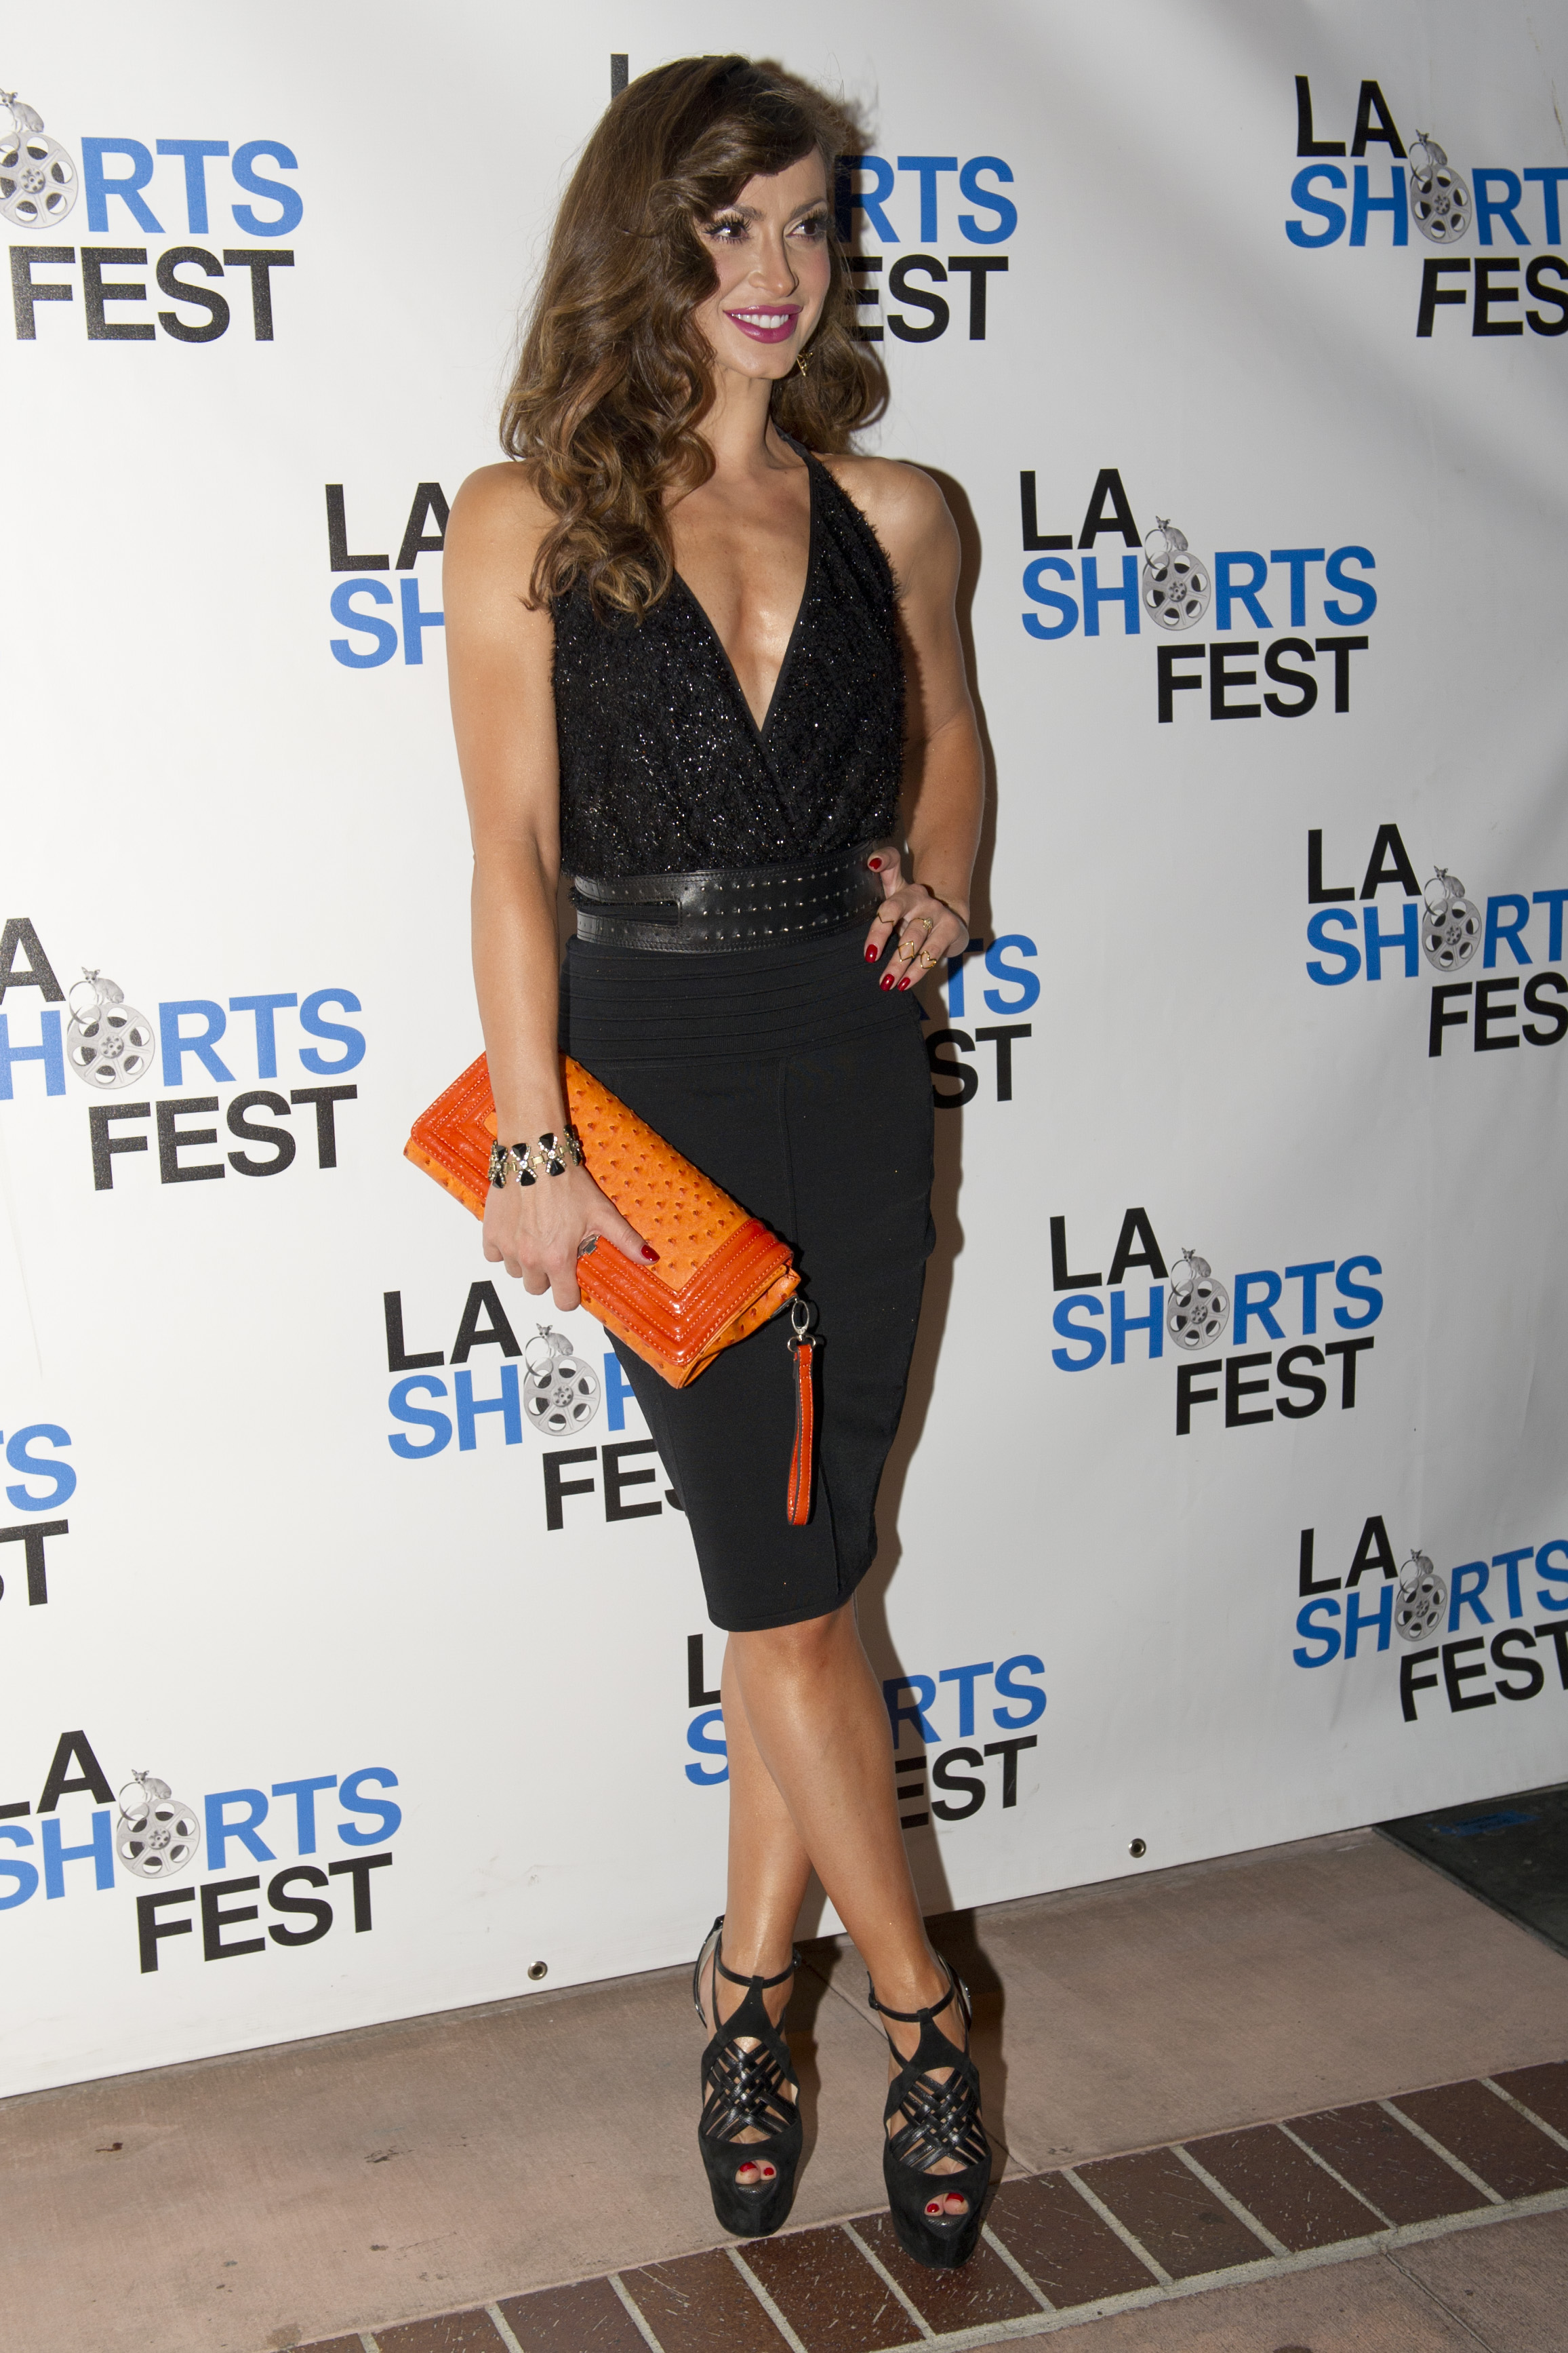 Dancing with the Stars  Karina Smirnoff at the 17th Annual LA Shorts Film Festival